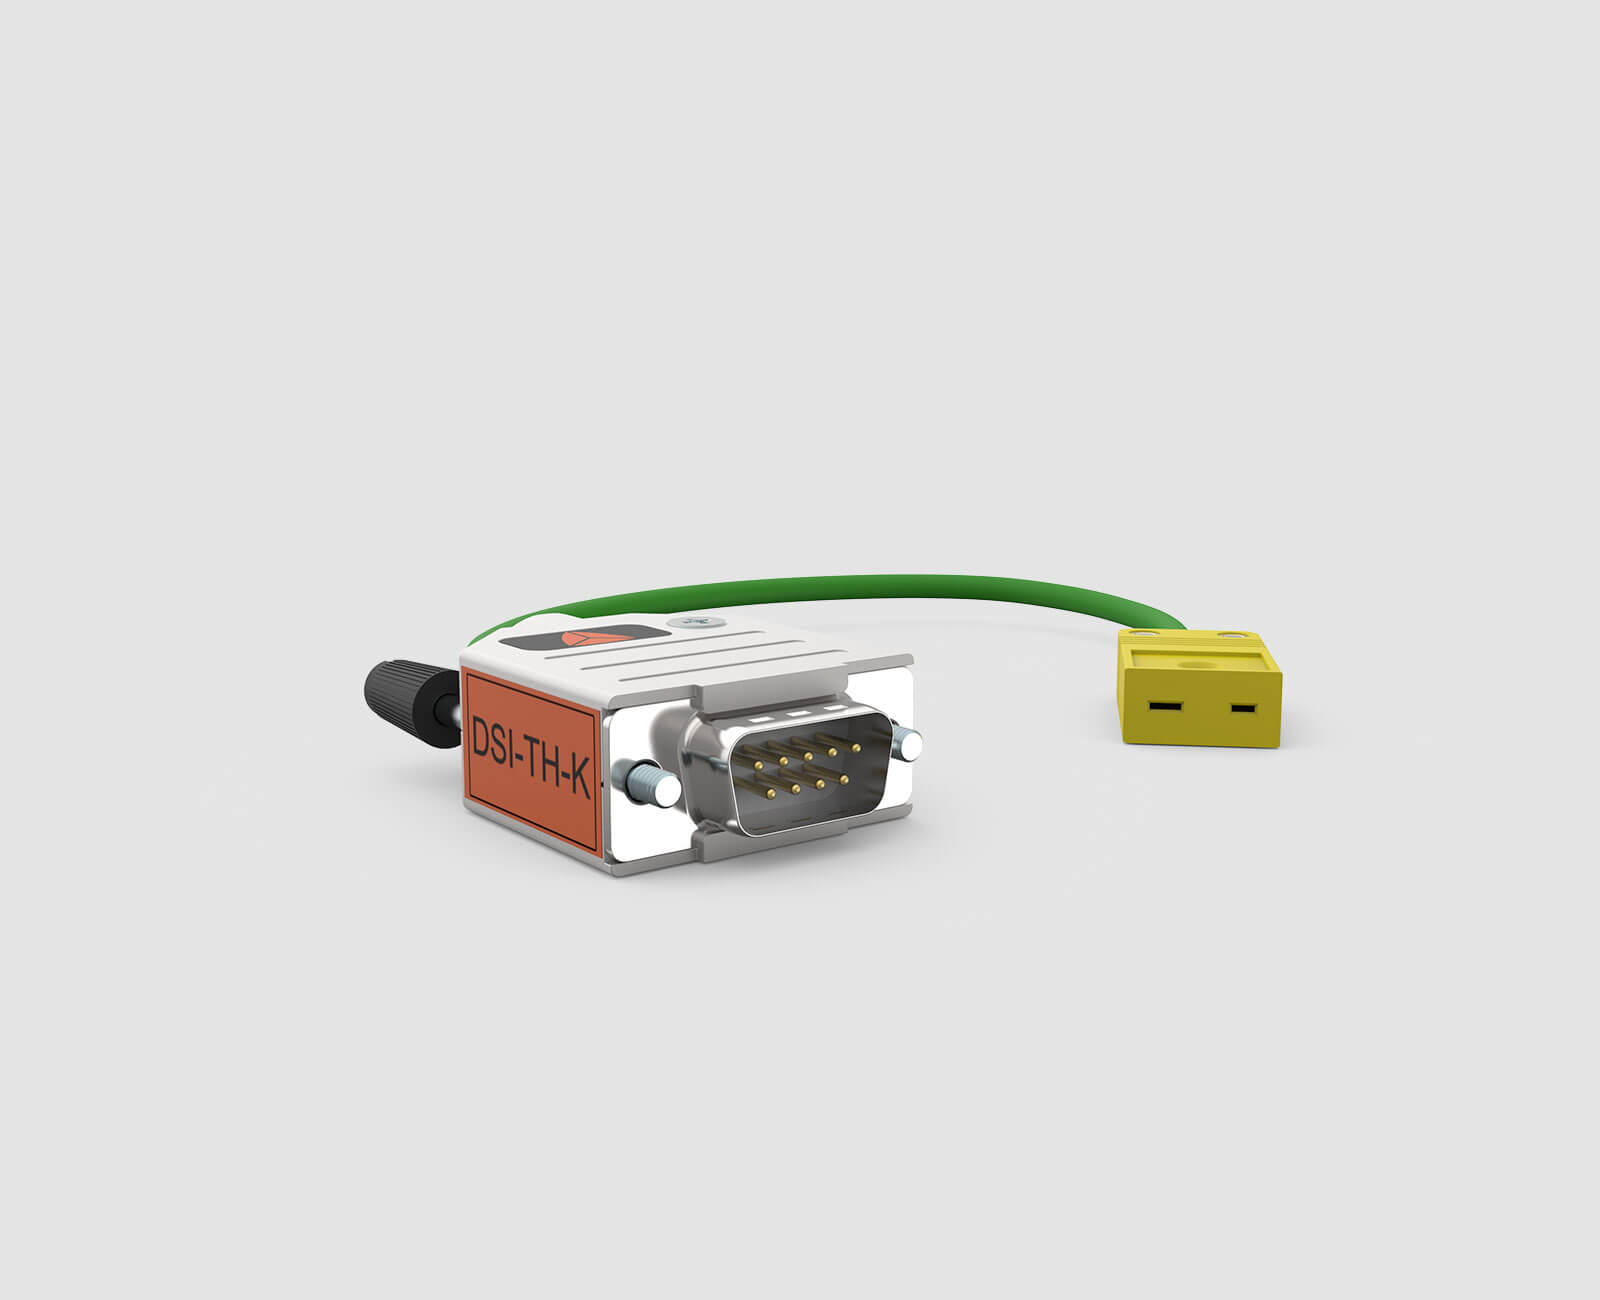 DSI - Dewesoft Smart Interface adapter for thermocouple sensors